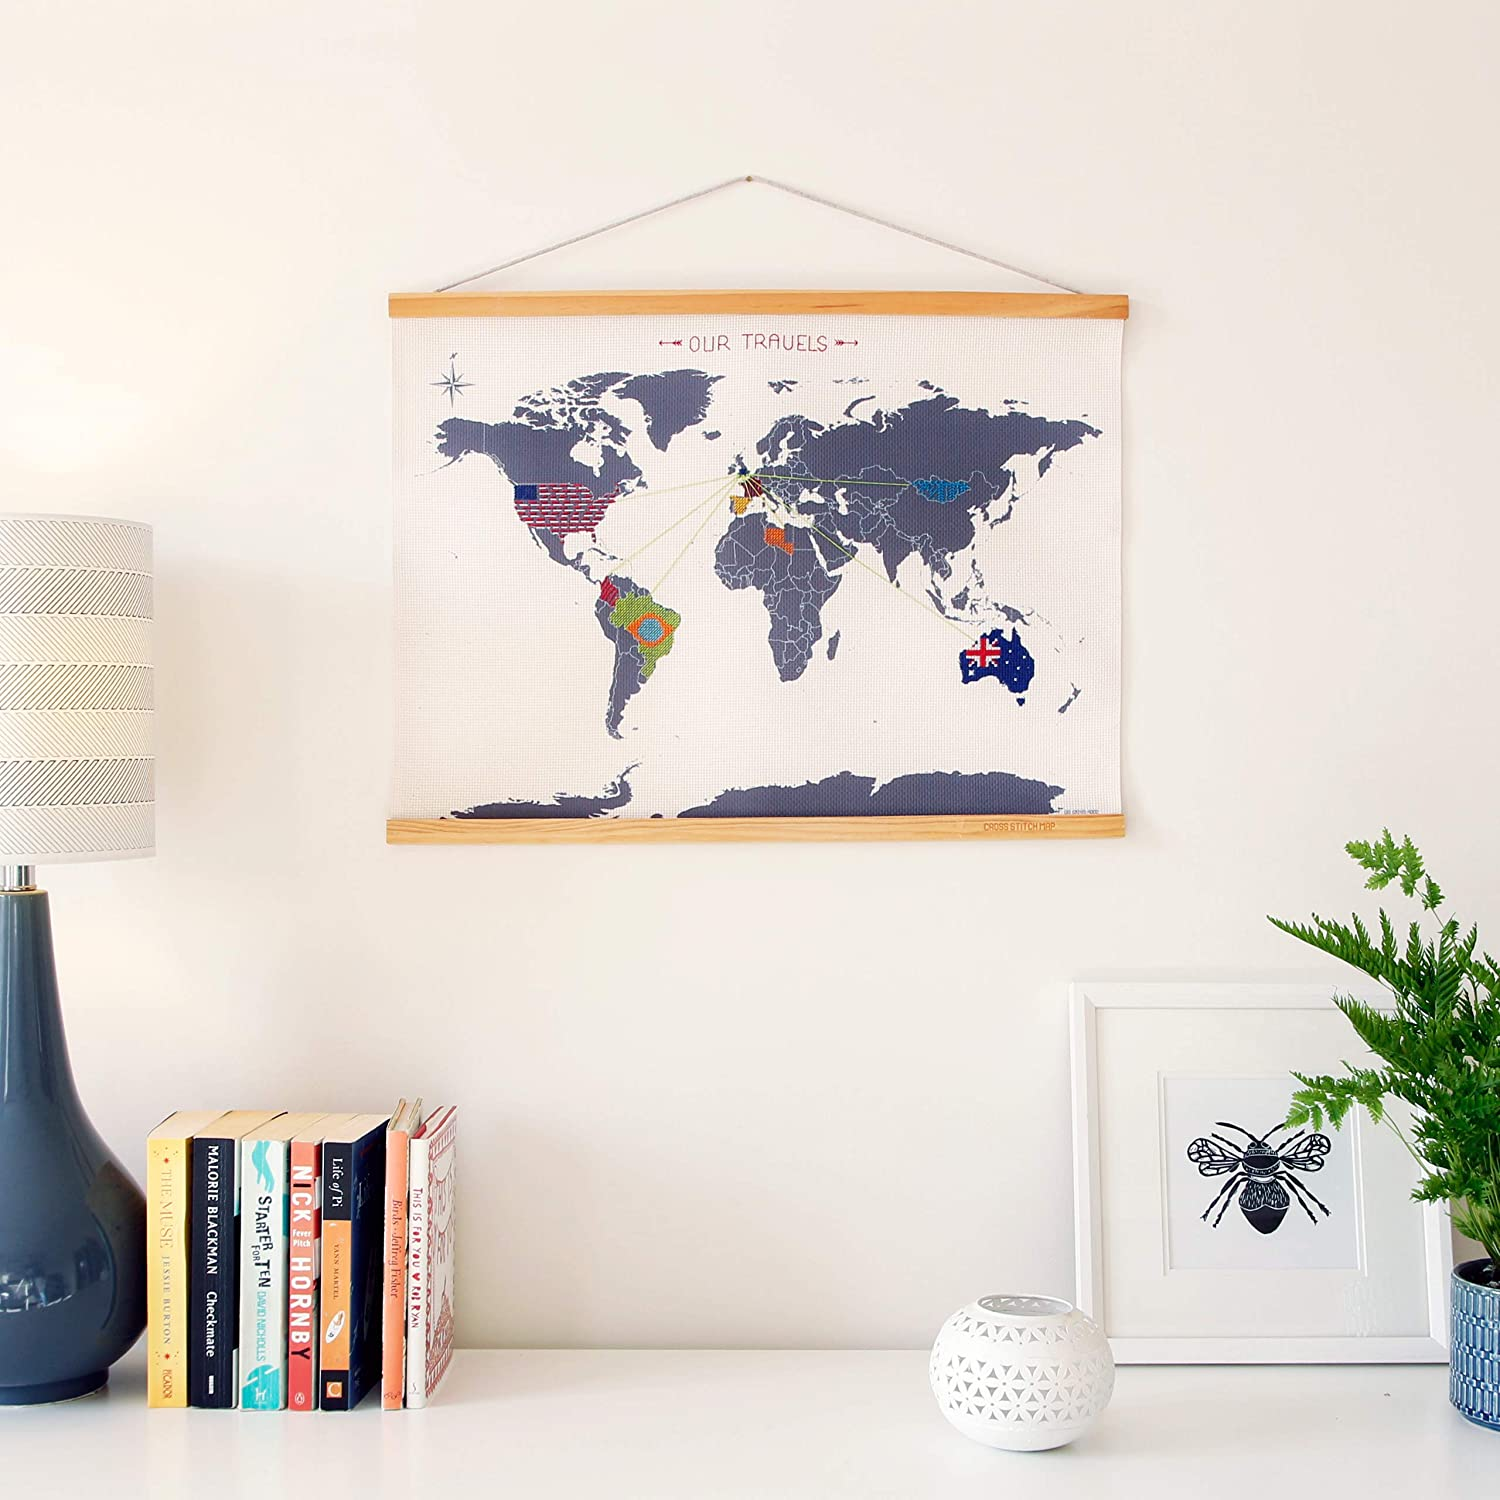 Buy  Suck UK Mini World Map with Cross-stitch Embroidery Kit